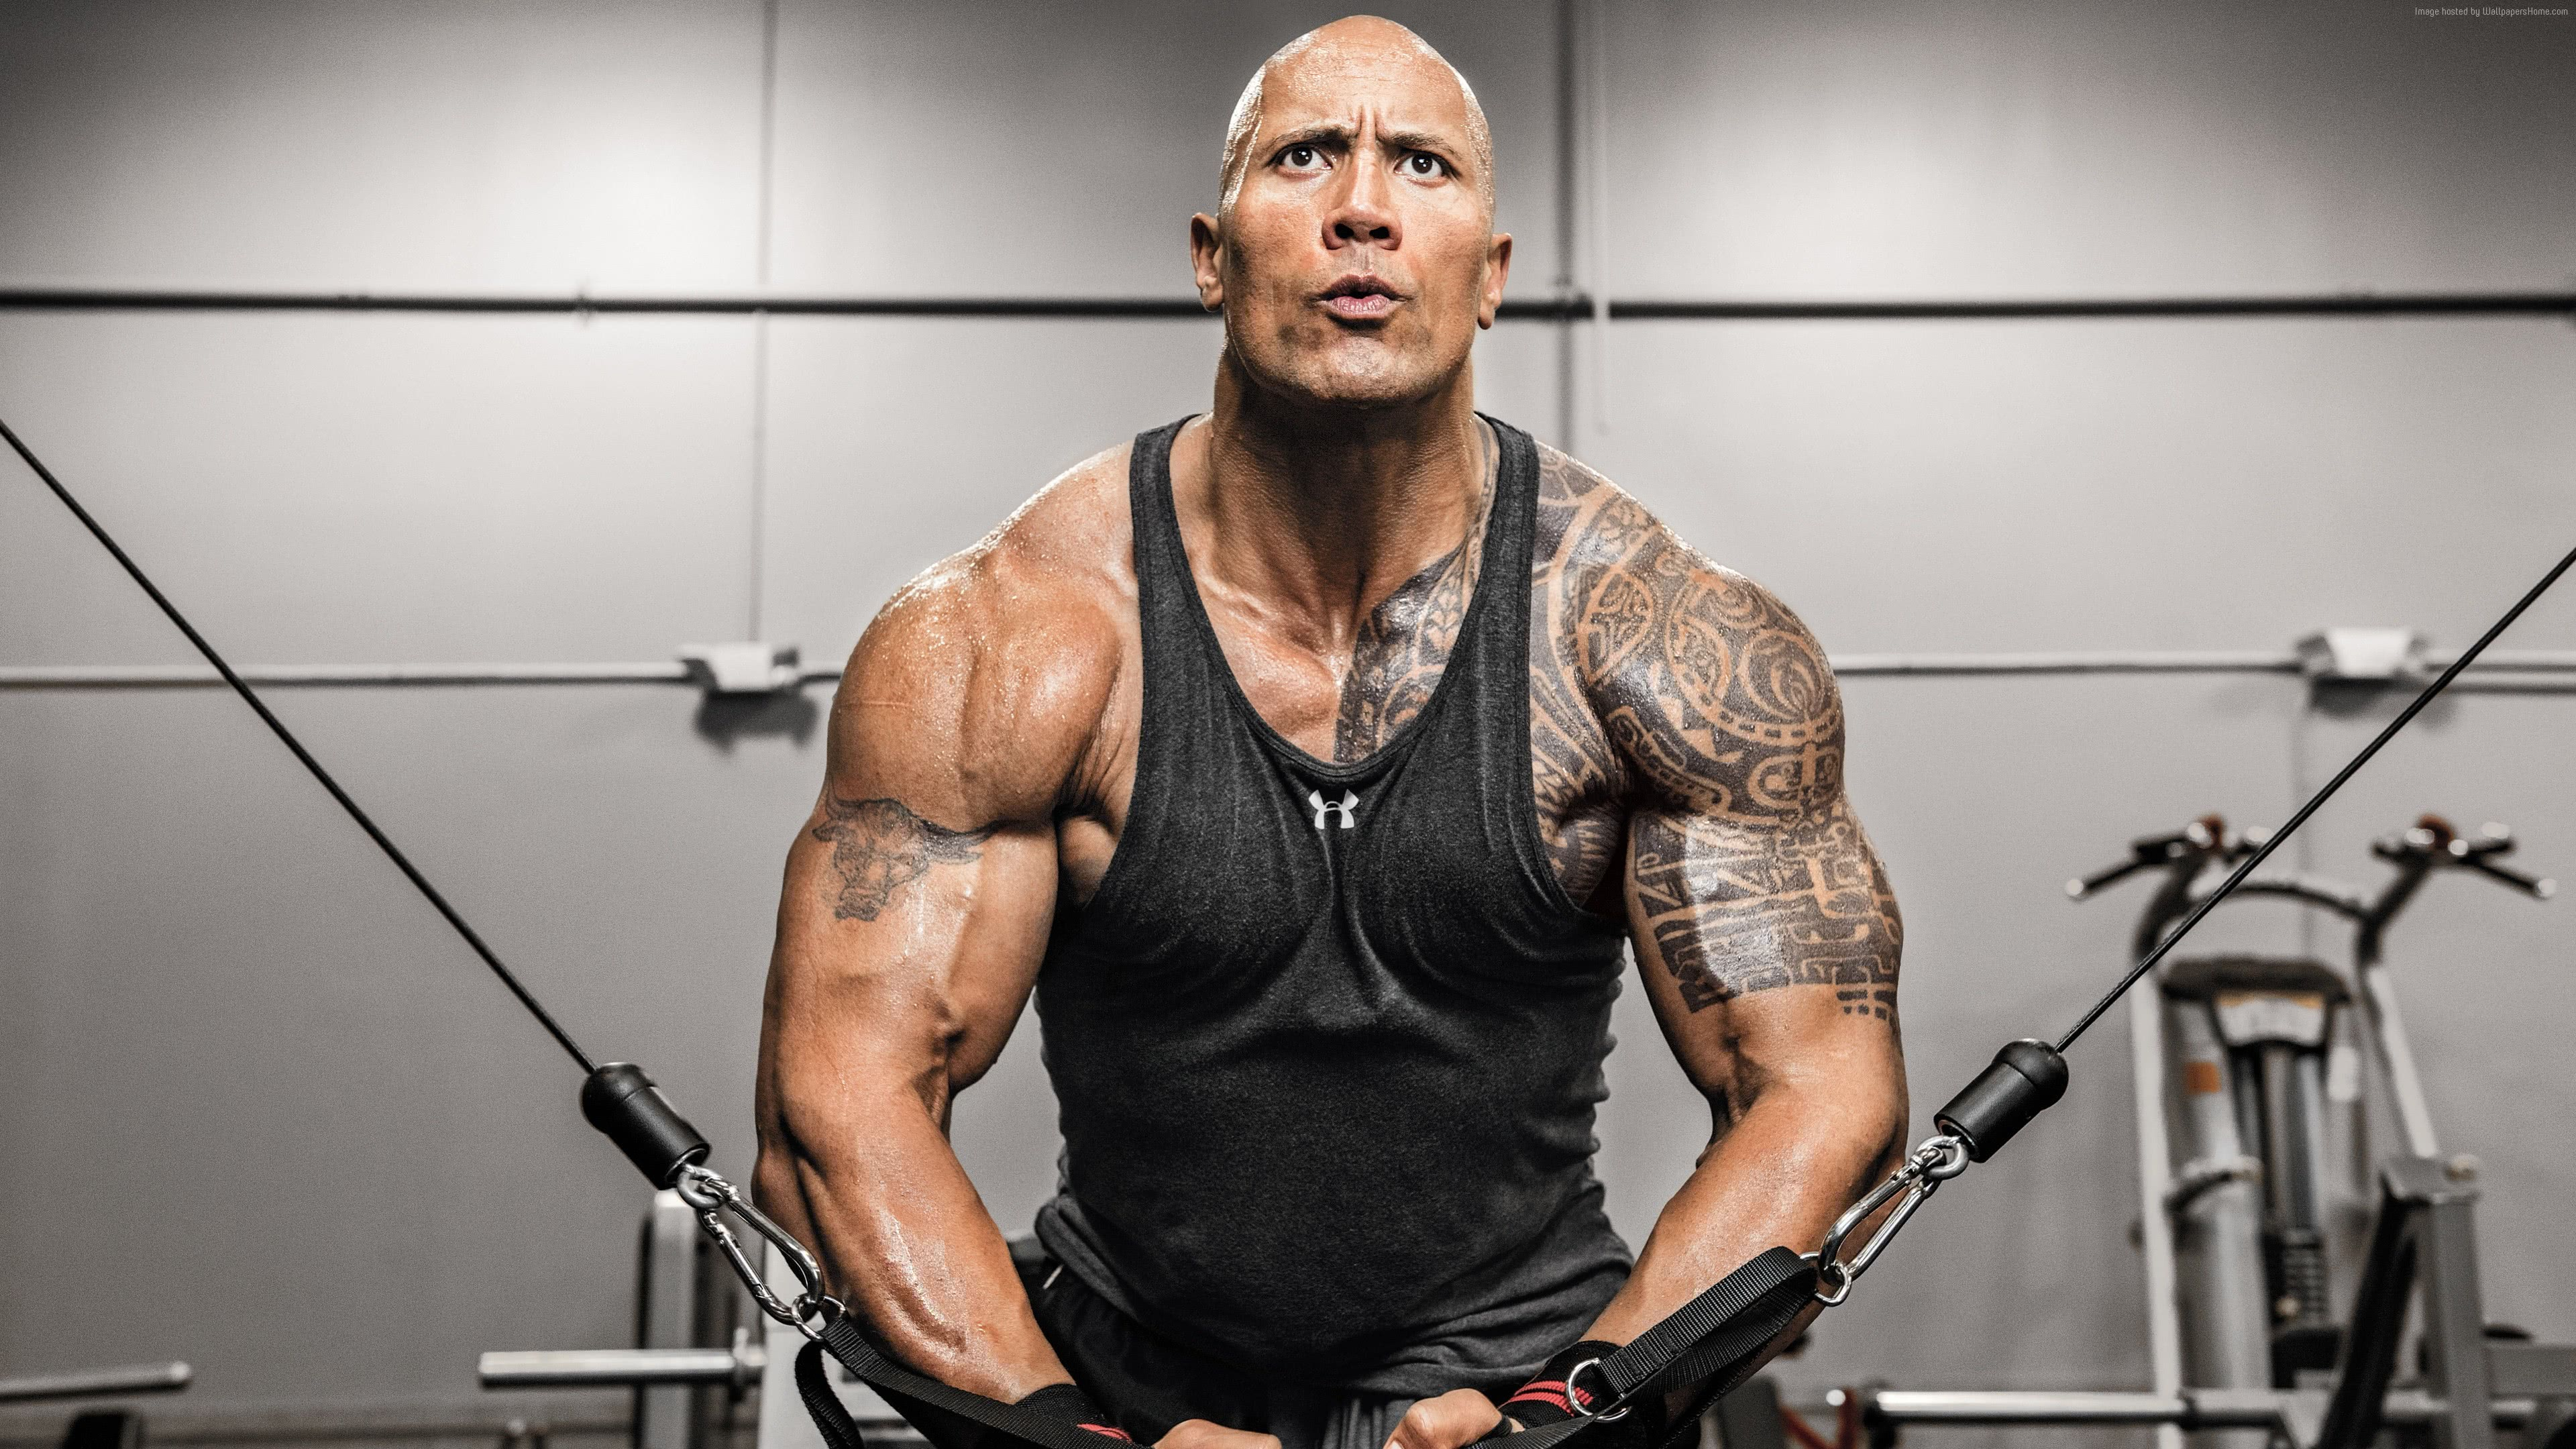 Dwayne Johnson Workout UHD 4K Wallpapers